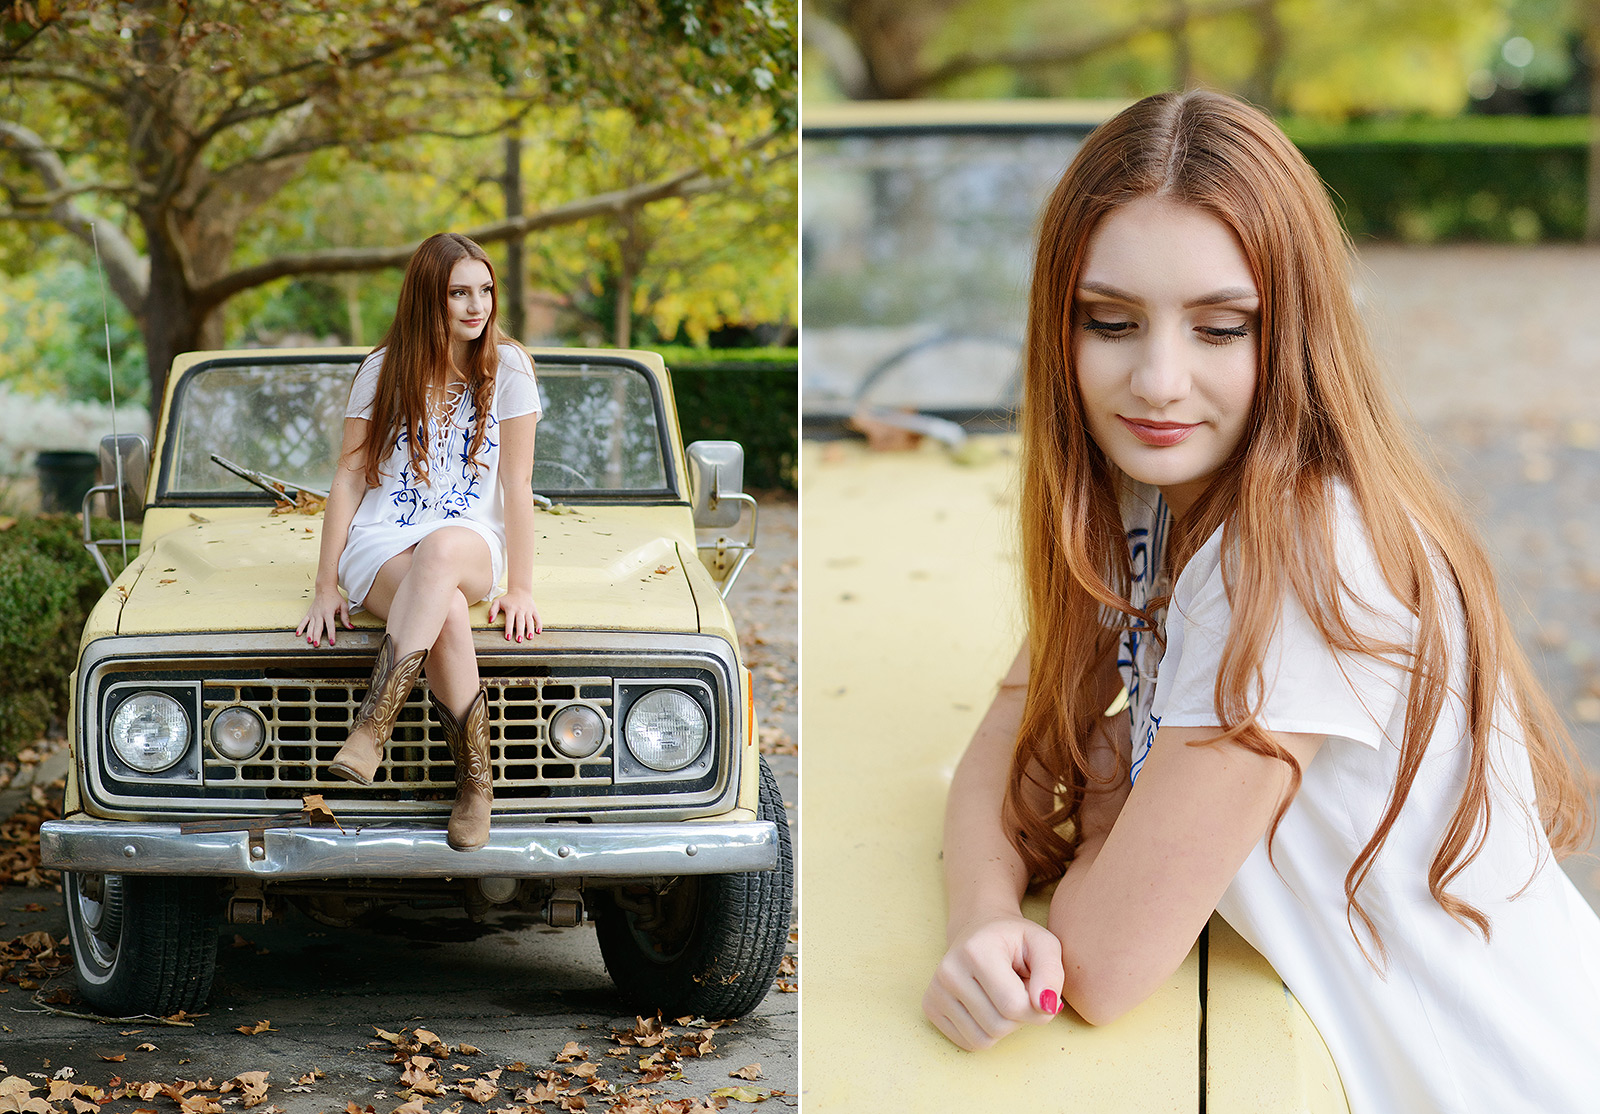 Senior Girl in Tunic and Cowboy Boots Sitting on Vintage Yellow Car in Sacramento